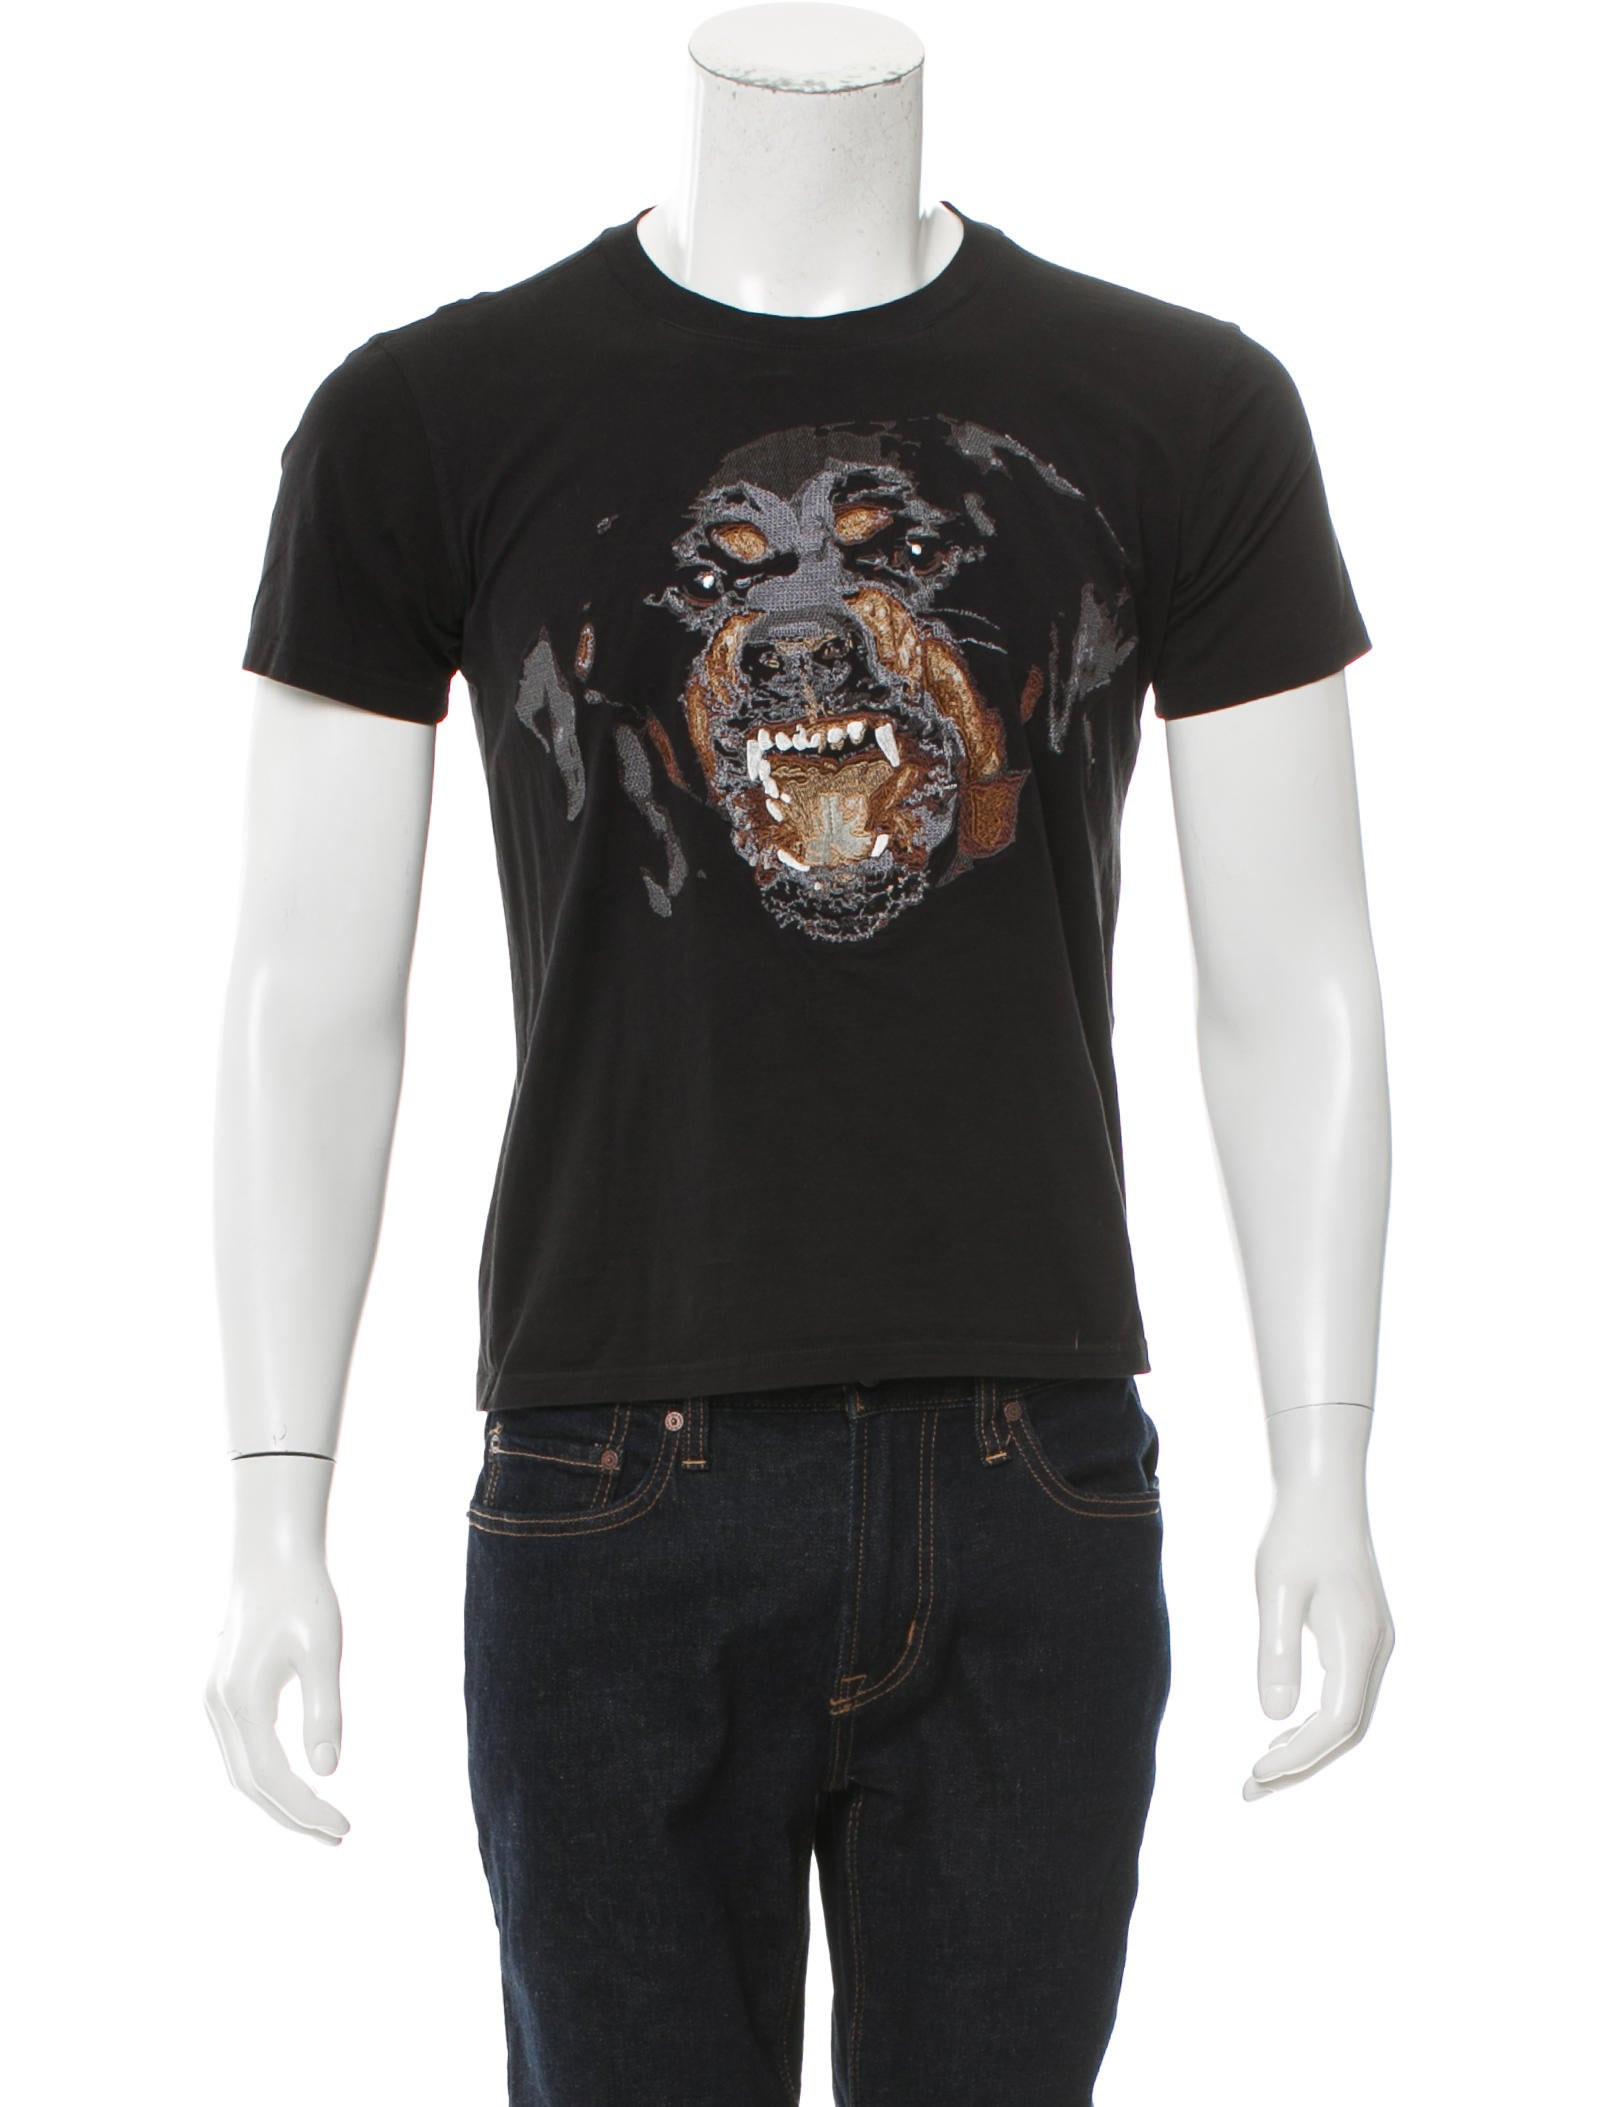 Givenchy 2015 embroidered rottweiler t shirt clothing Givenchy t shirt price